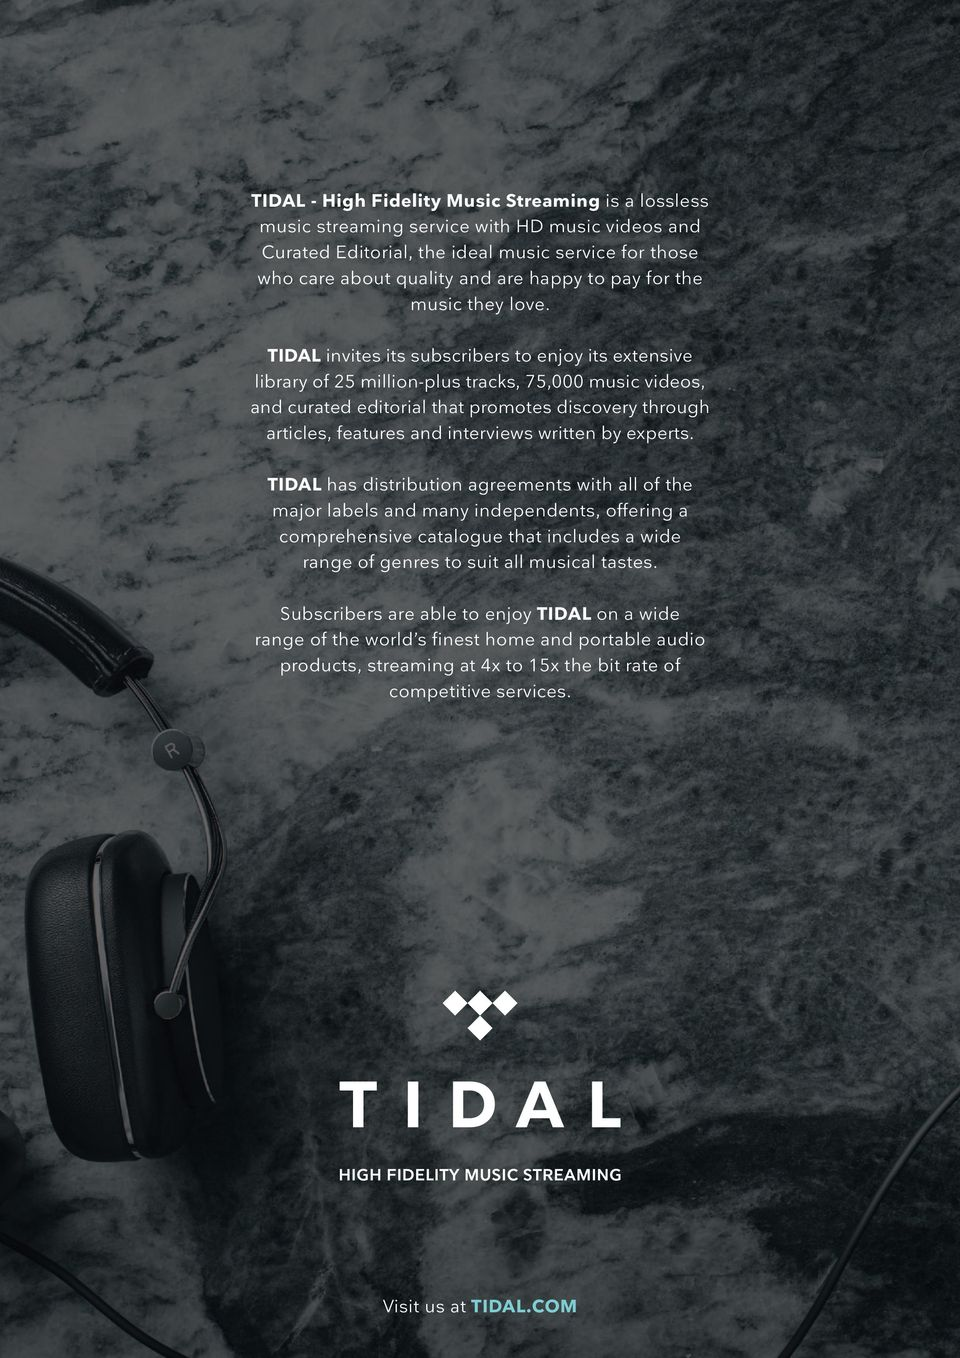 TIDAL invites its subscribers to enjoy its extensive library of 25 million-plus tracks, 75,000 music videos, and curated editorial that promotes discovery through articles, features and interviews